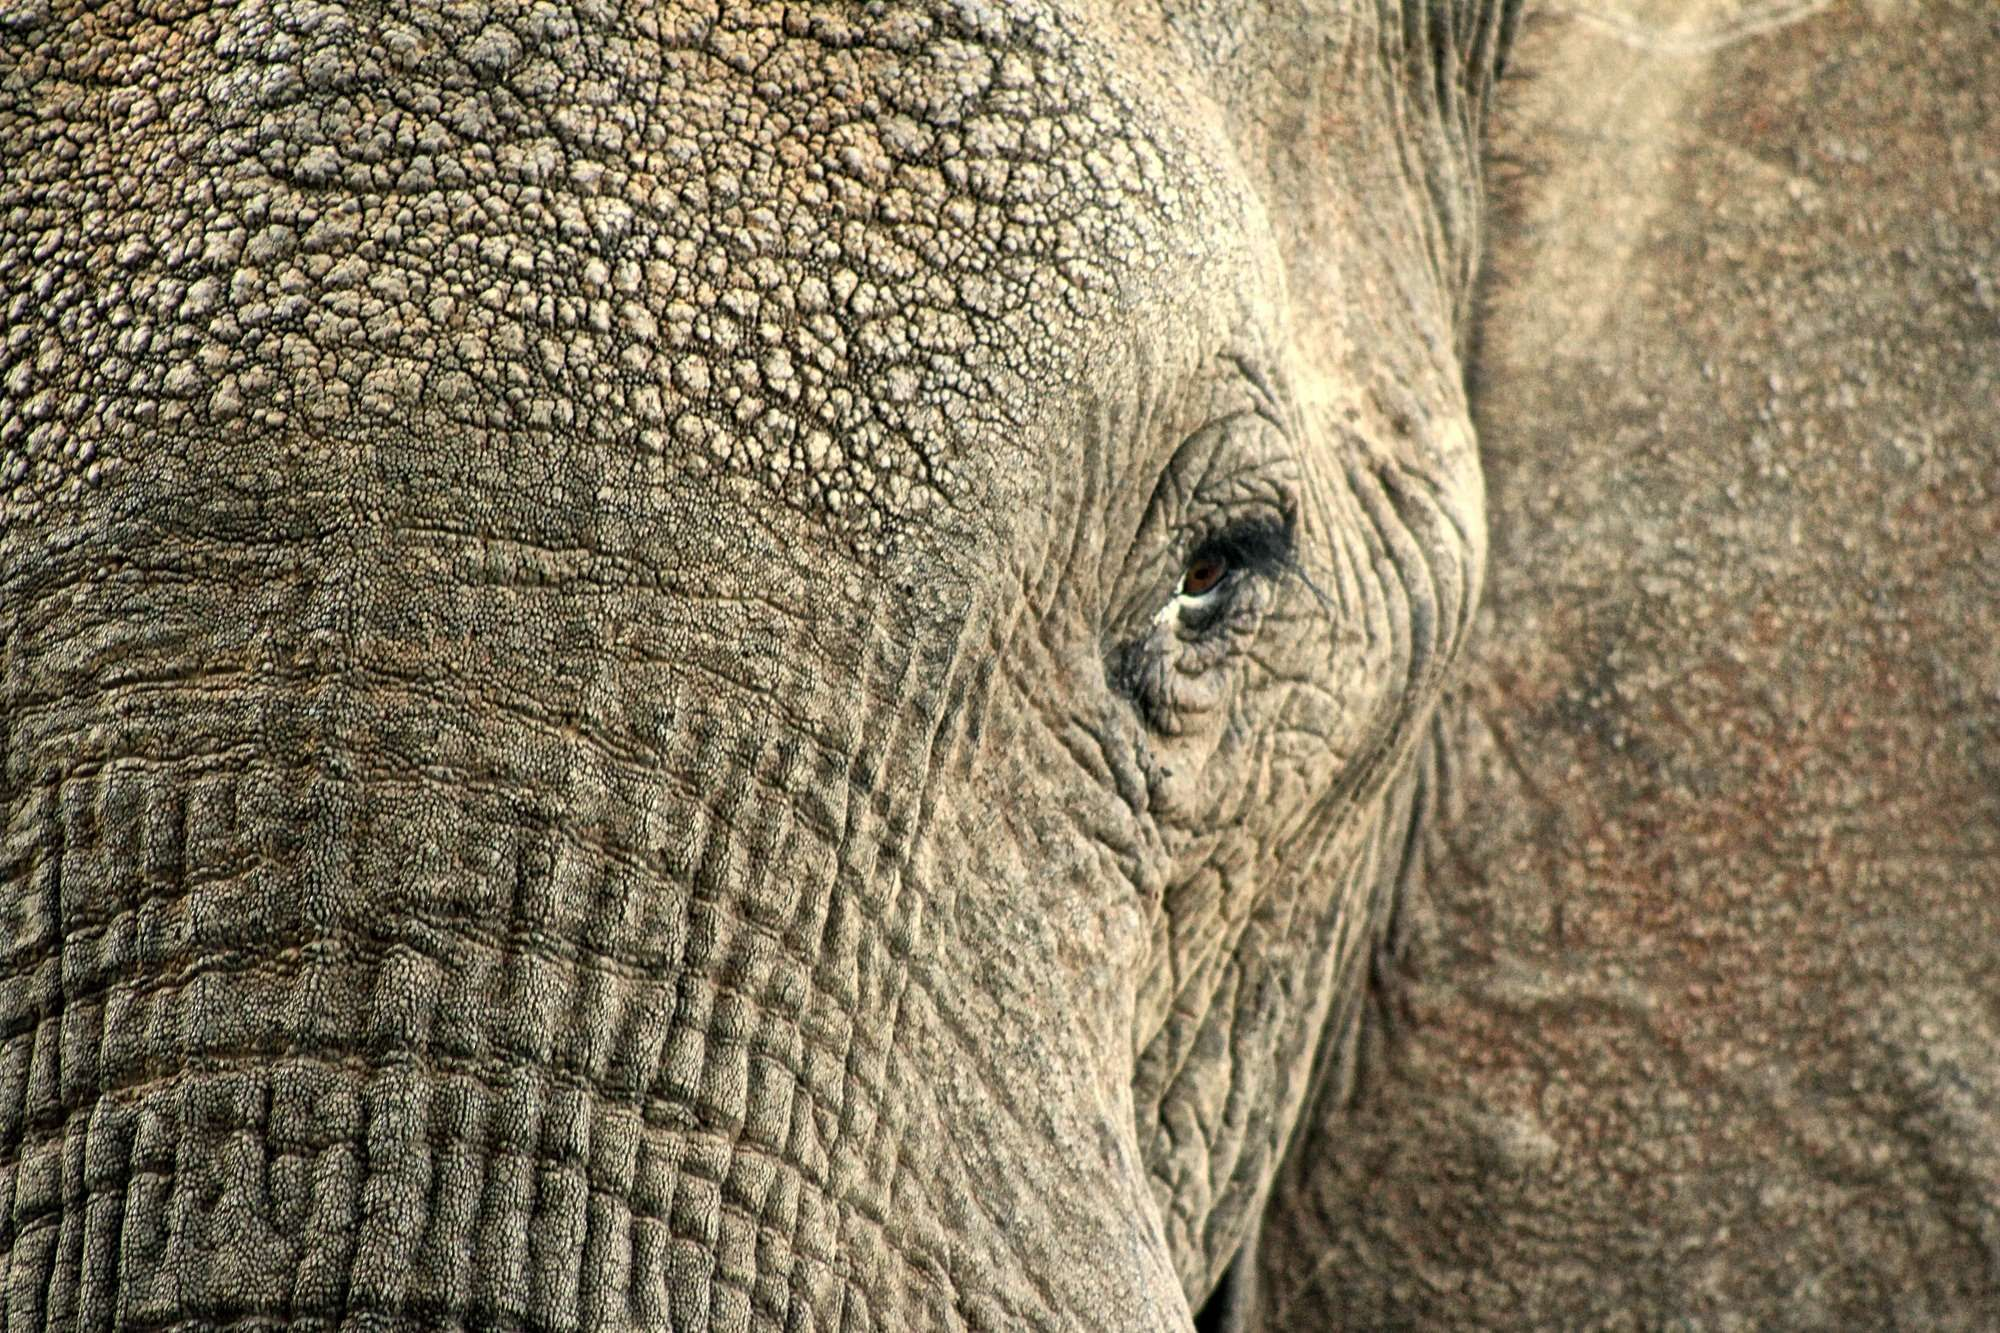 Africa Animal Closeup Elephant Hdr Hide Macro Safari Skin